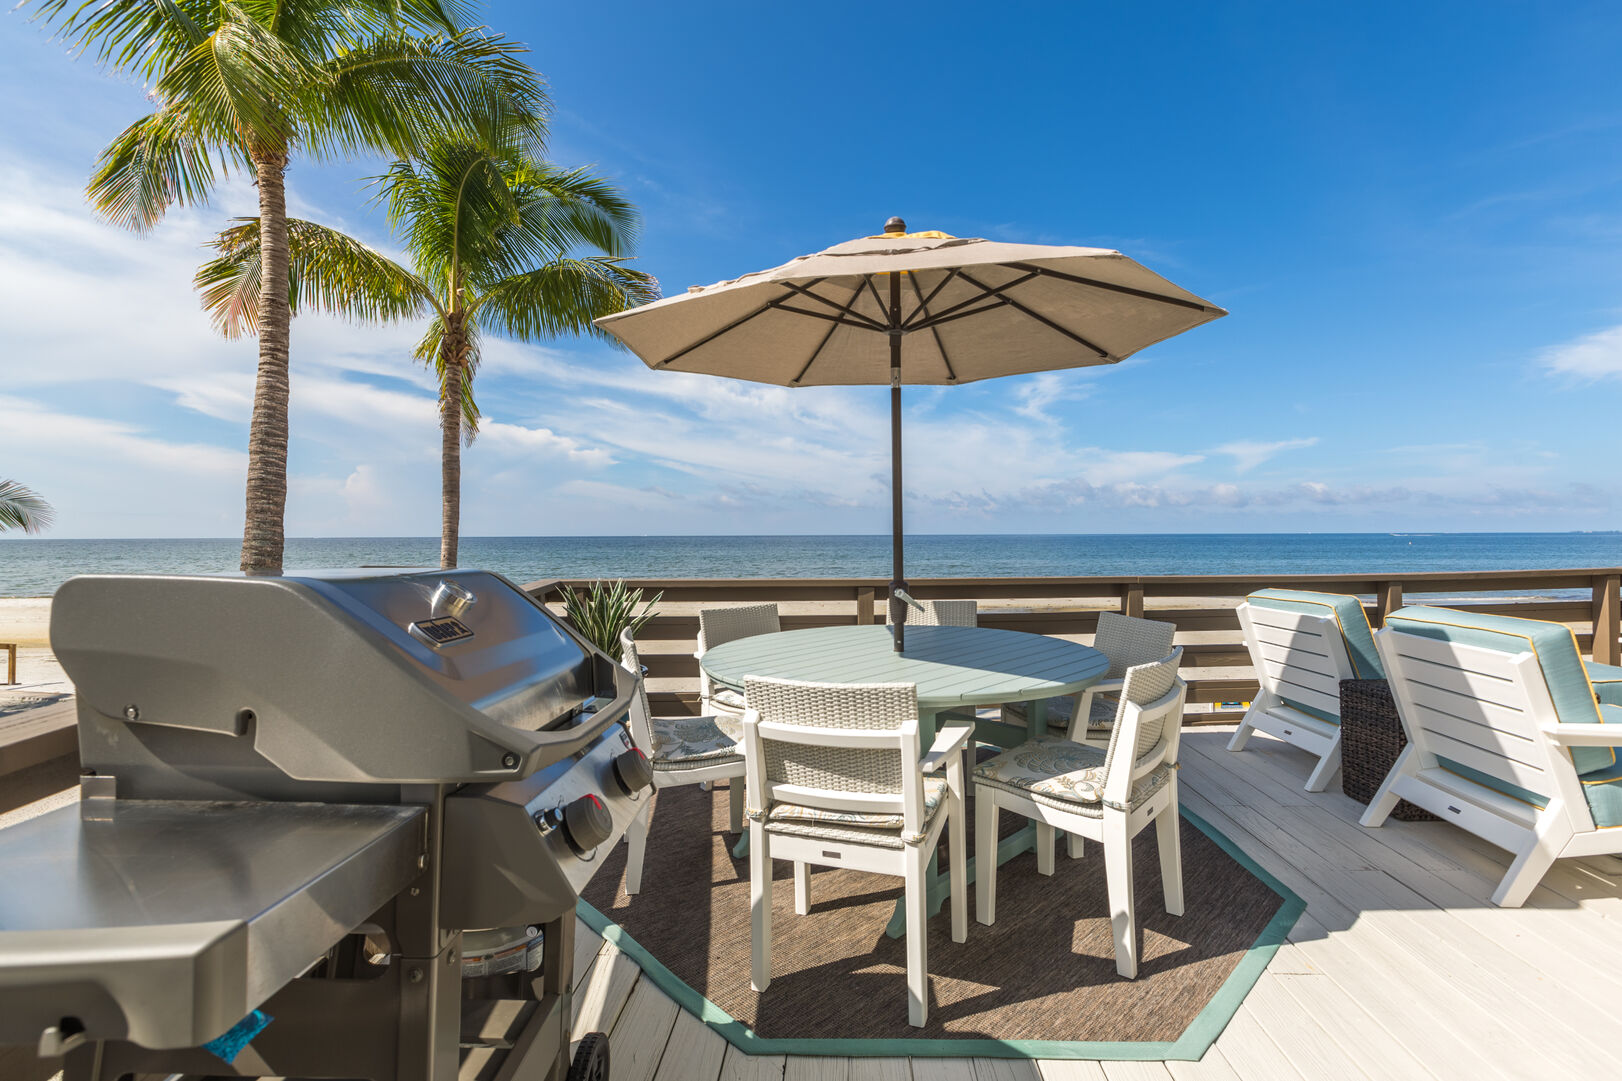 Grill and Patio at Beach Rental Fort Myers Beach